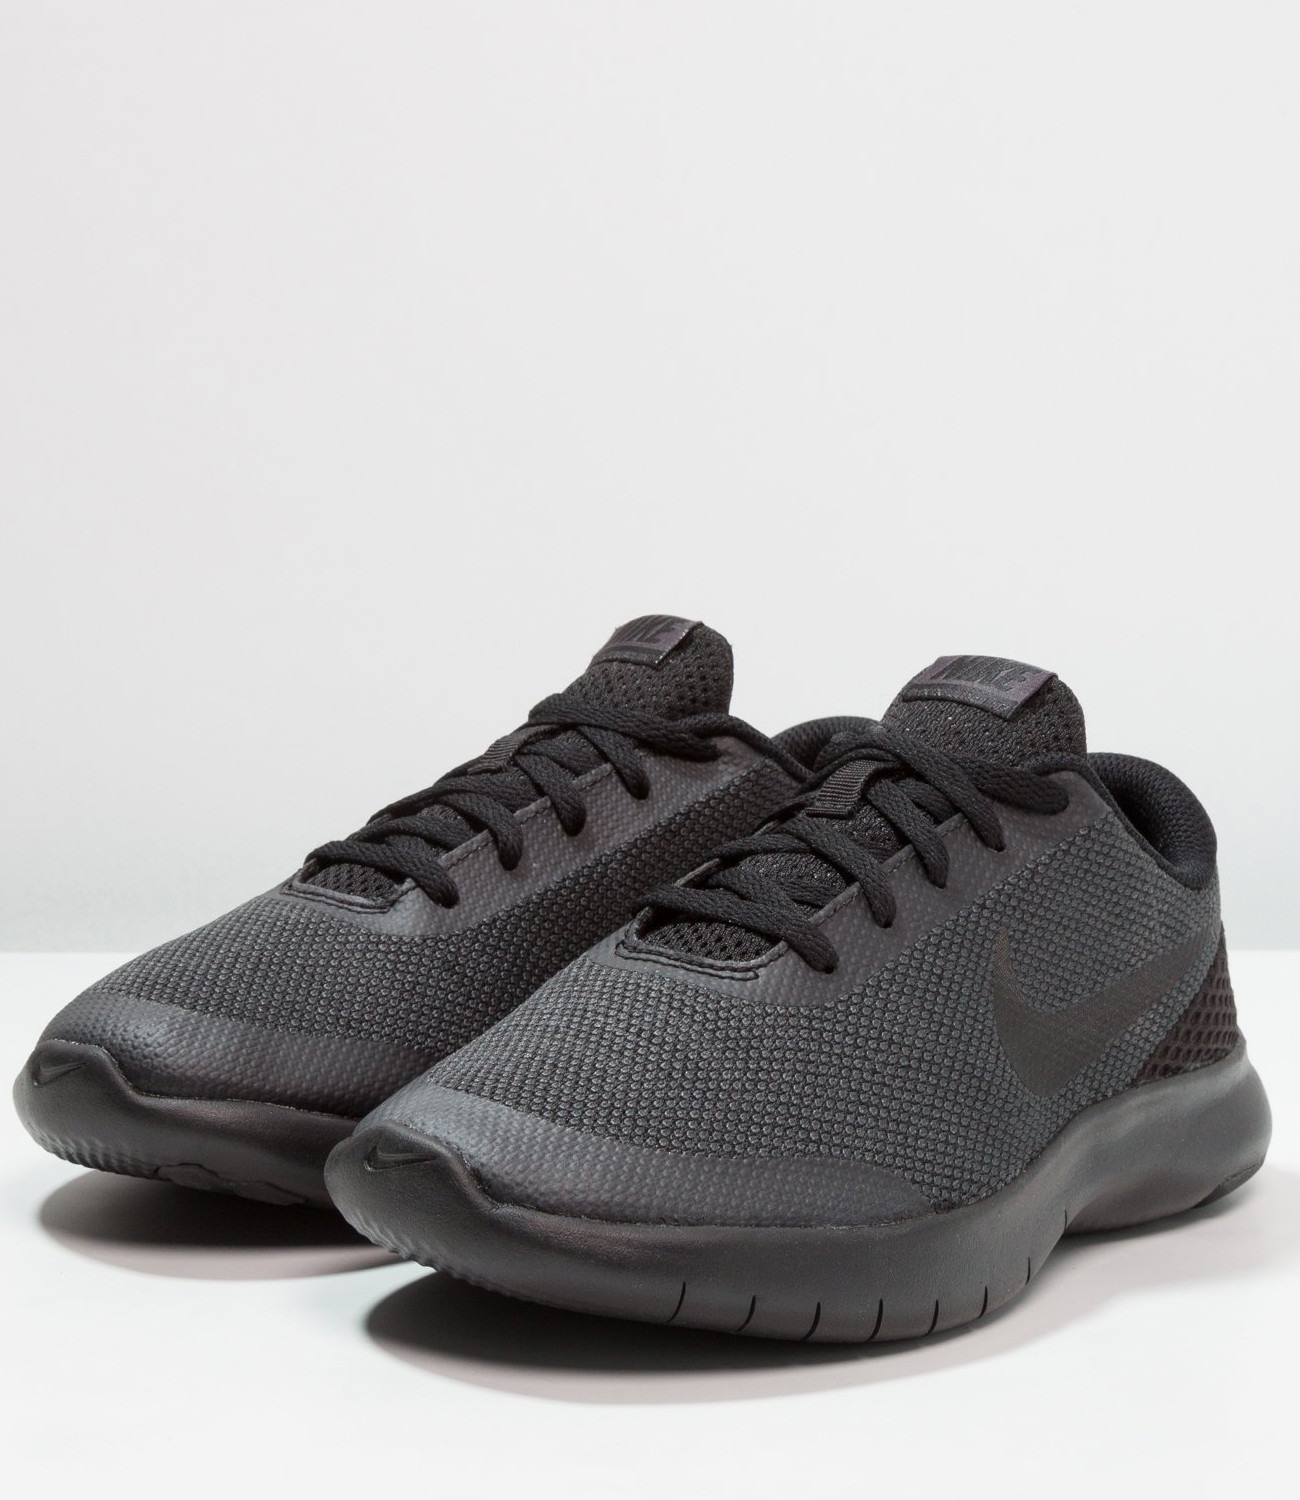 Nike Flex Experience 7 shoes Sneakers Ginnastica Running black